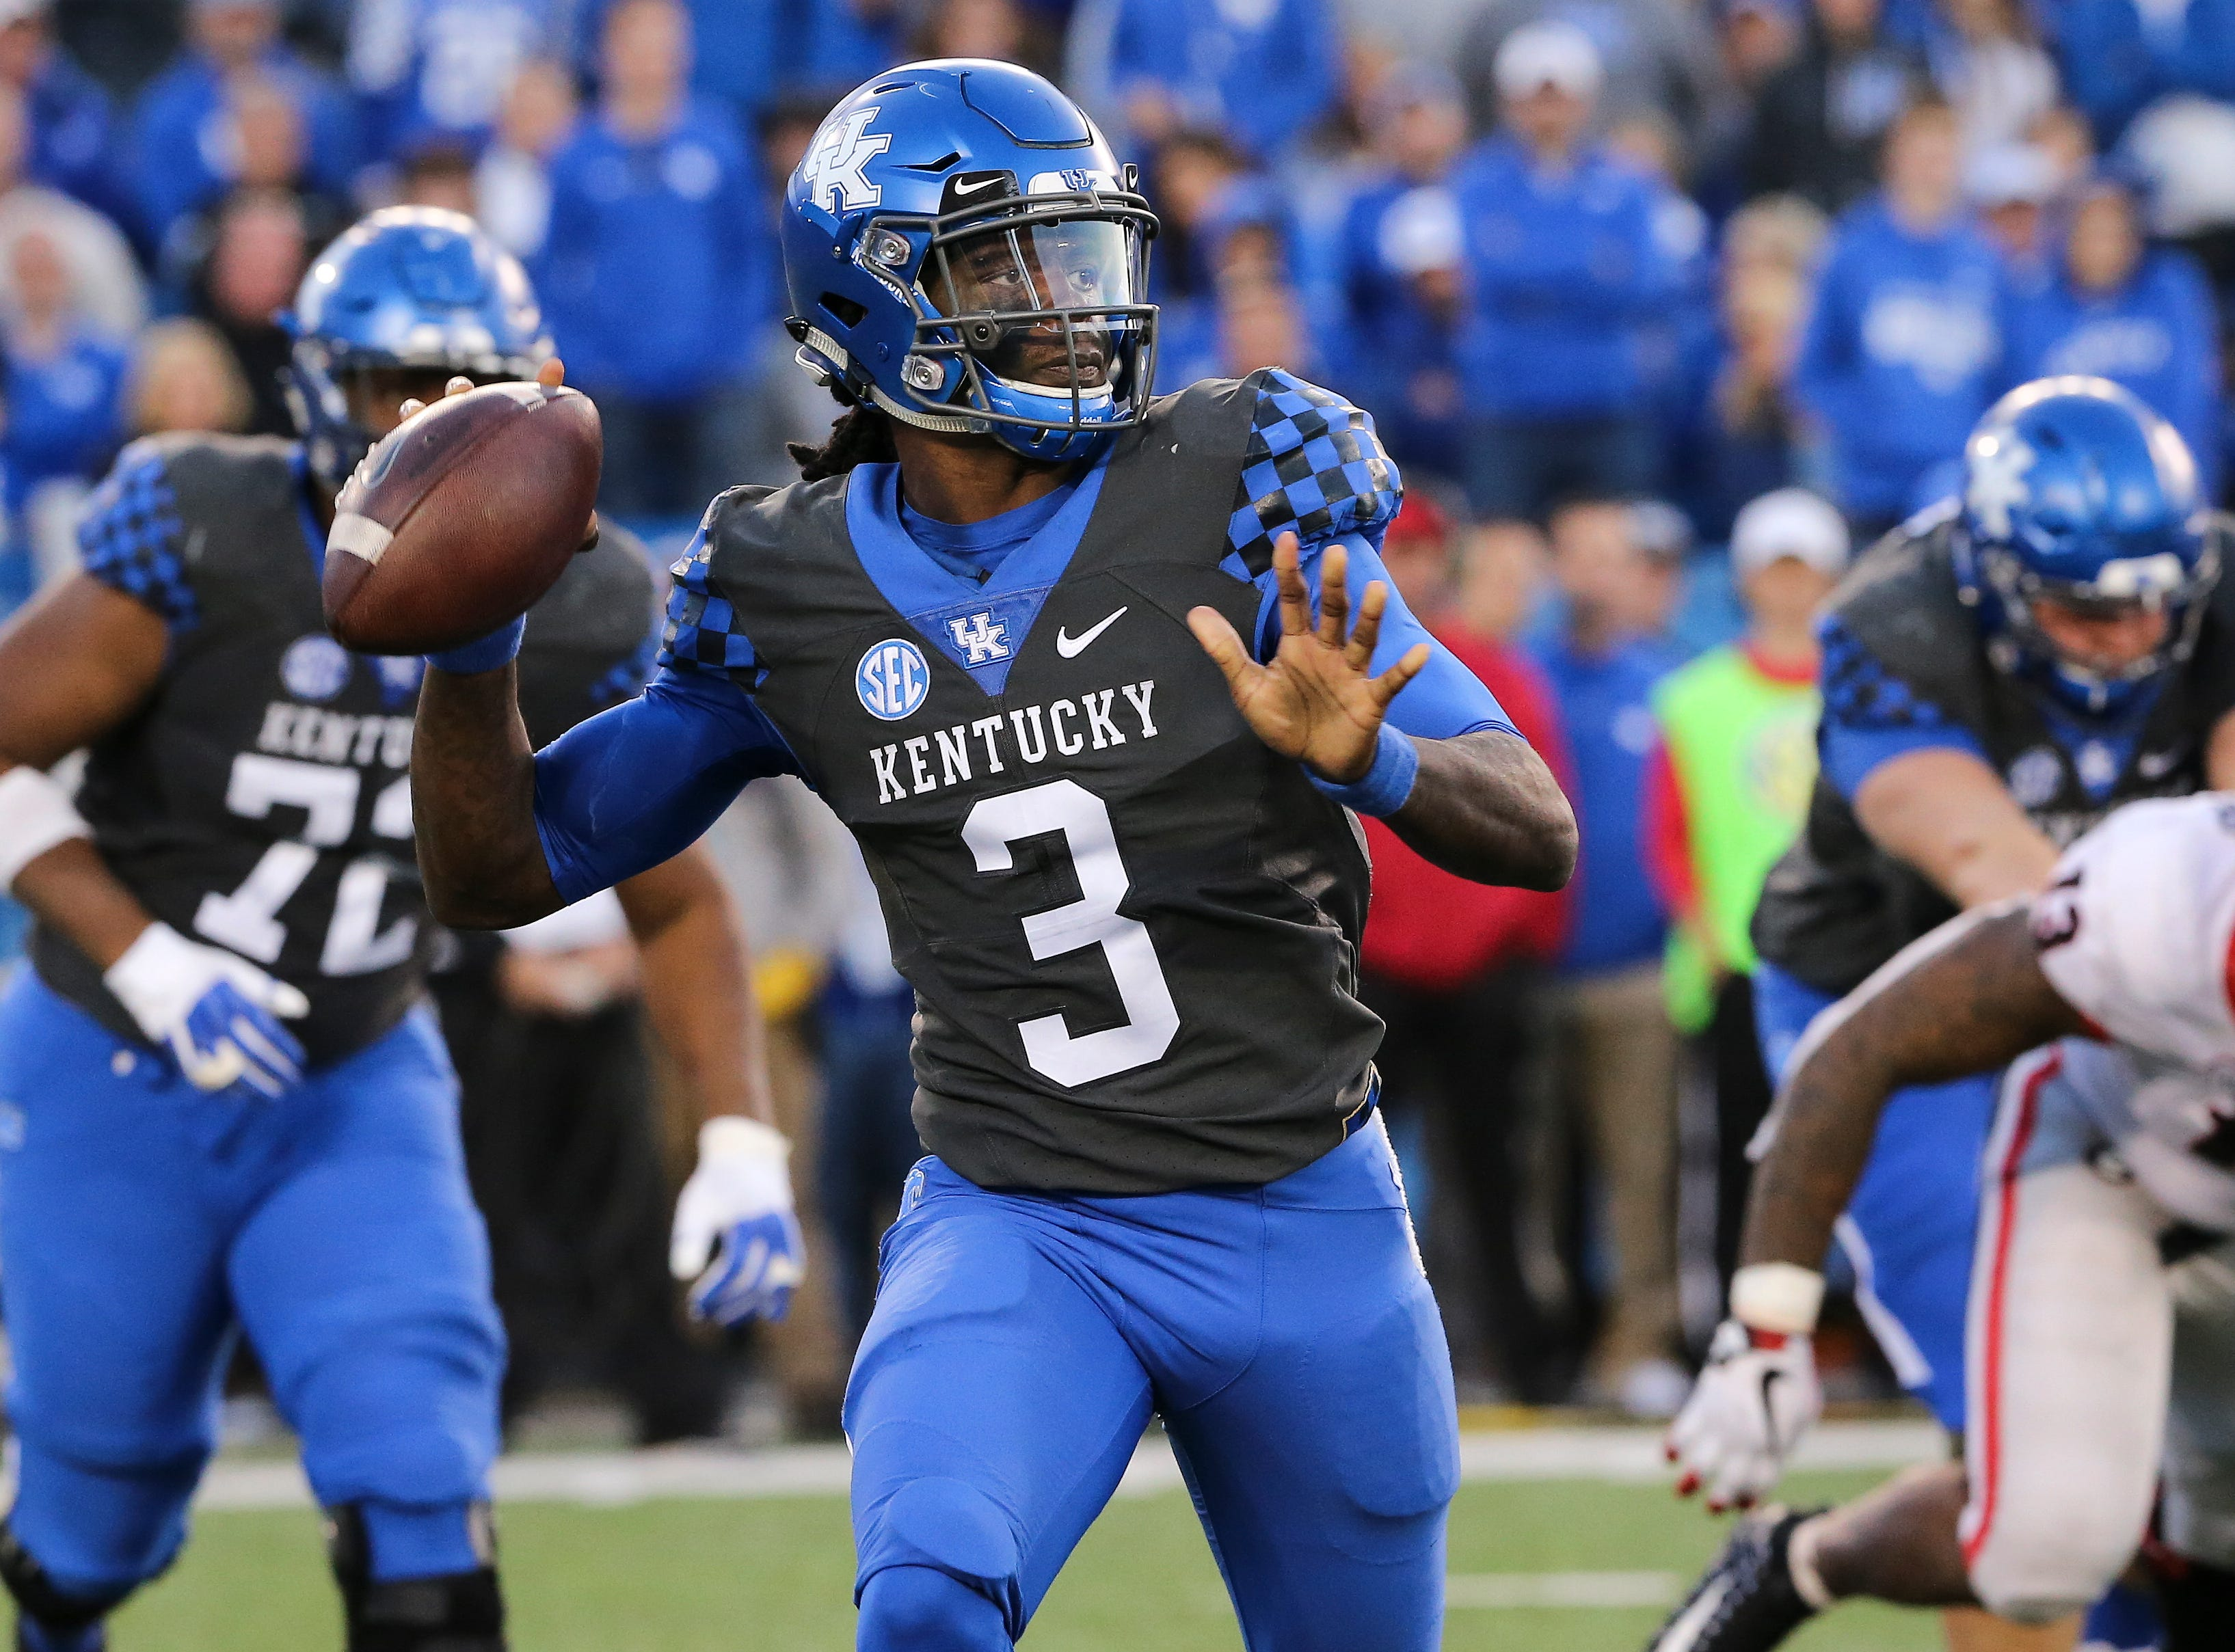 UK QB Terry Wilson (3) looked to pass against Georgia during their game at Kroger Field in Lexington.  